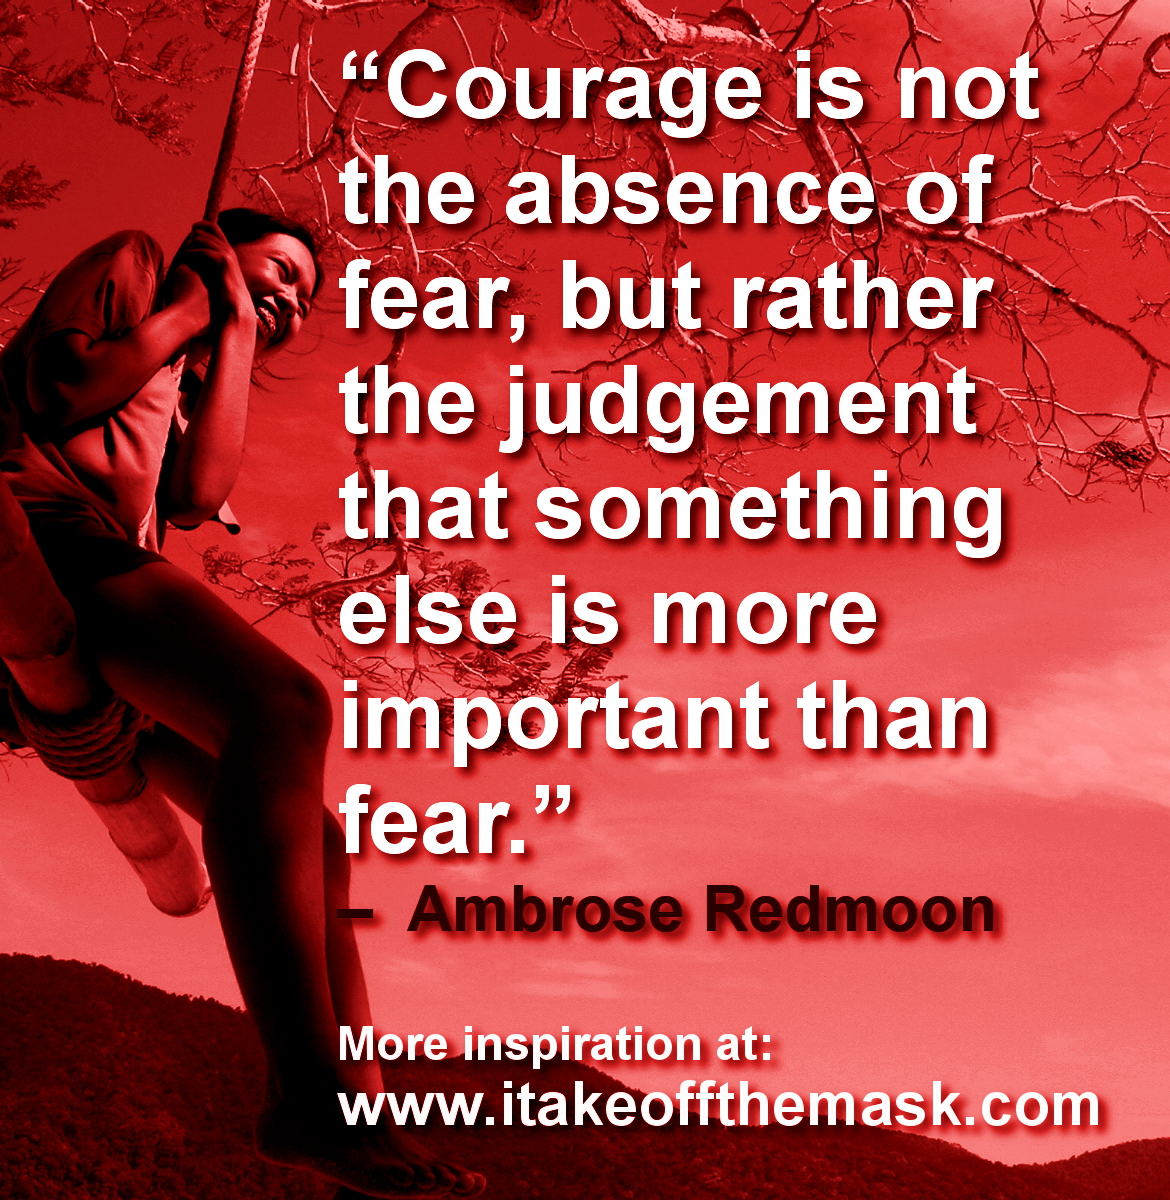 The Courage That Overcomes Fear